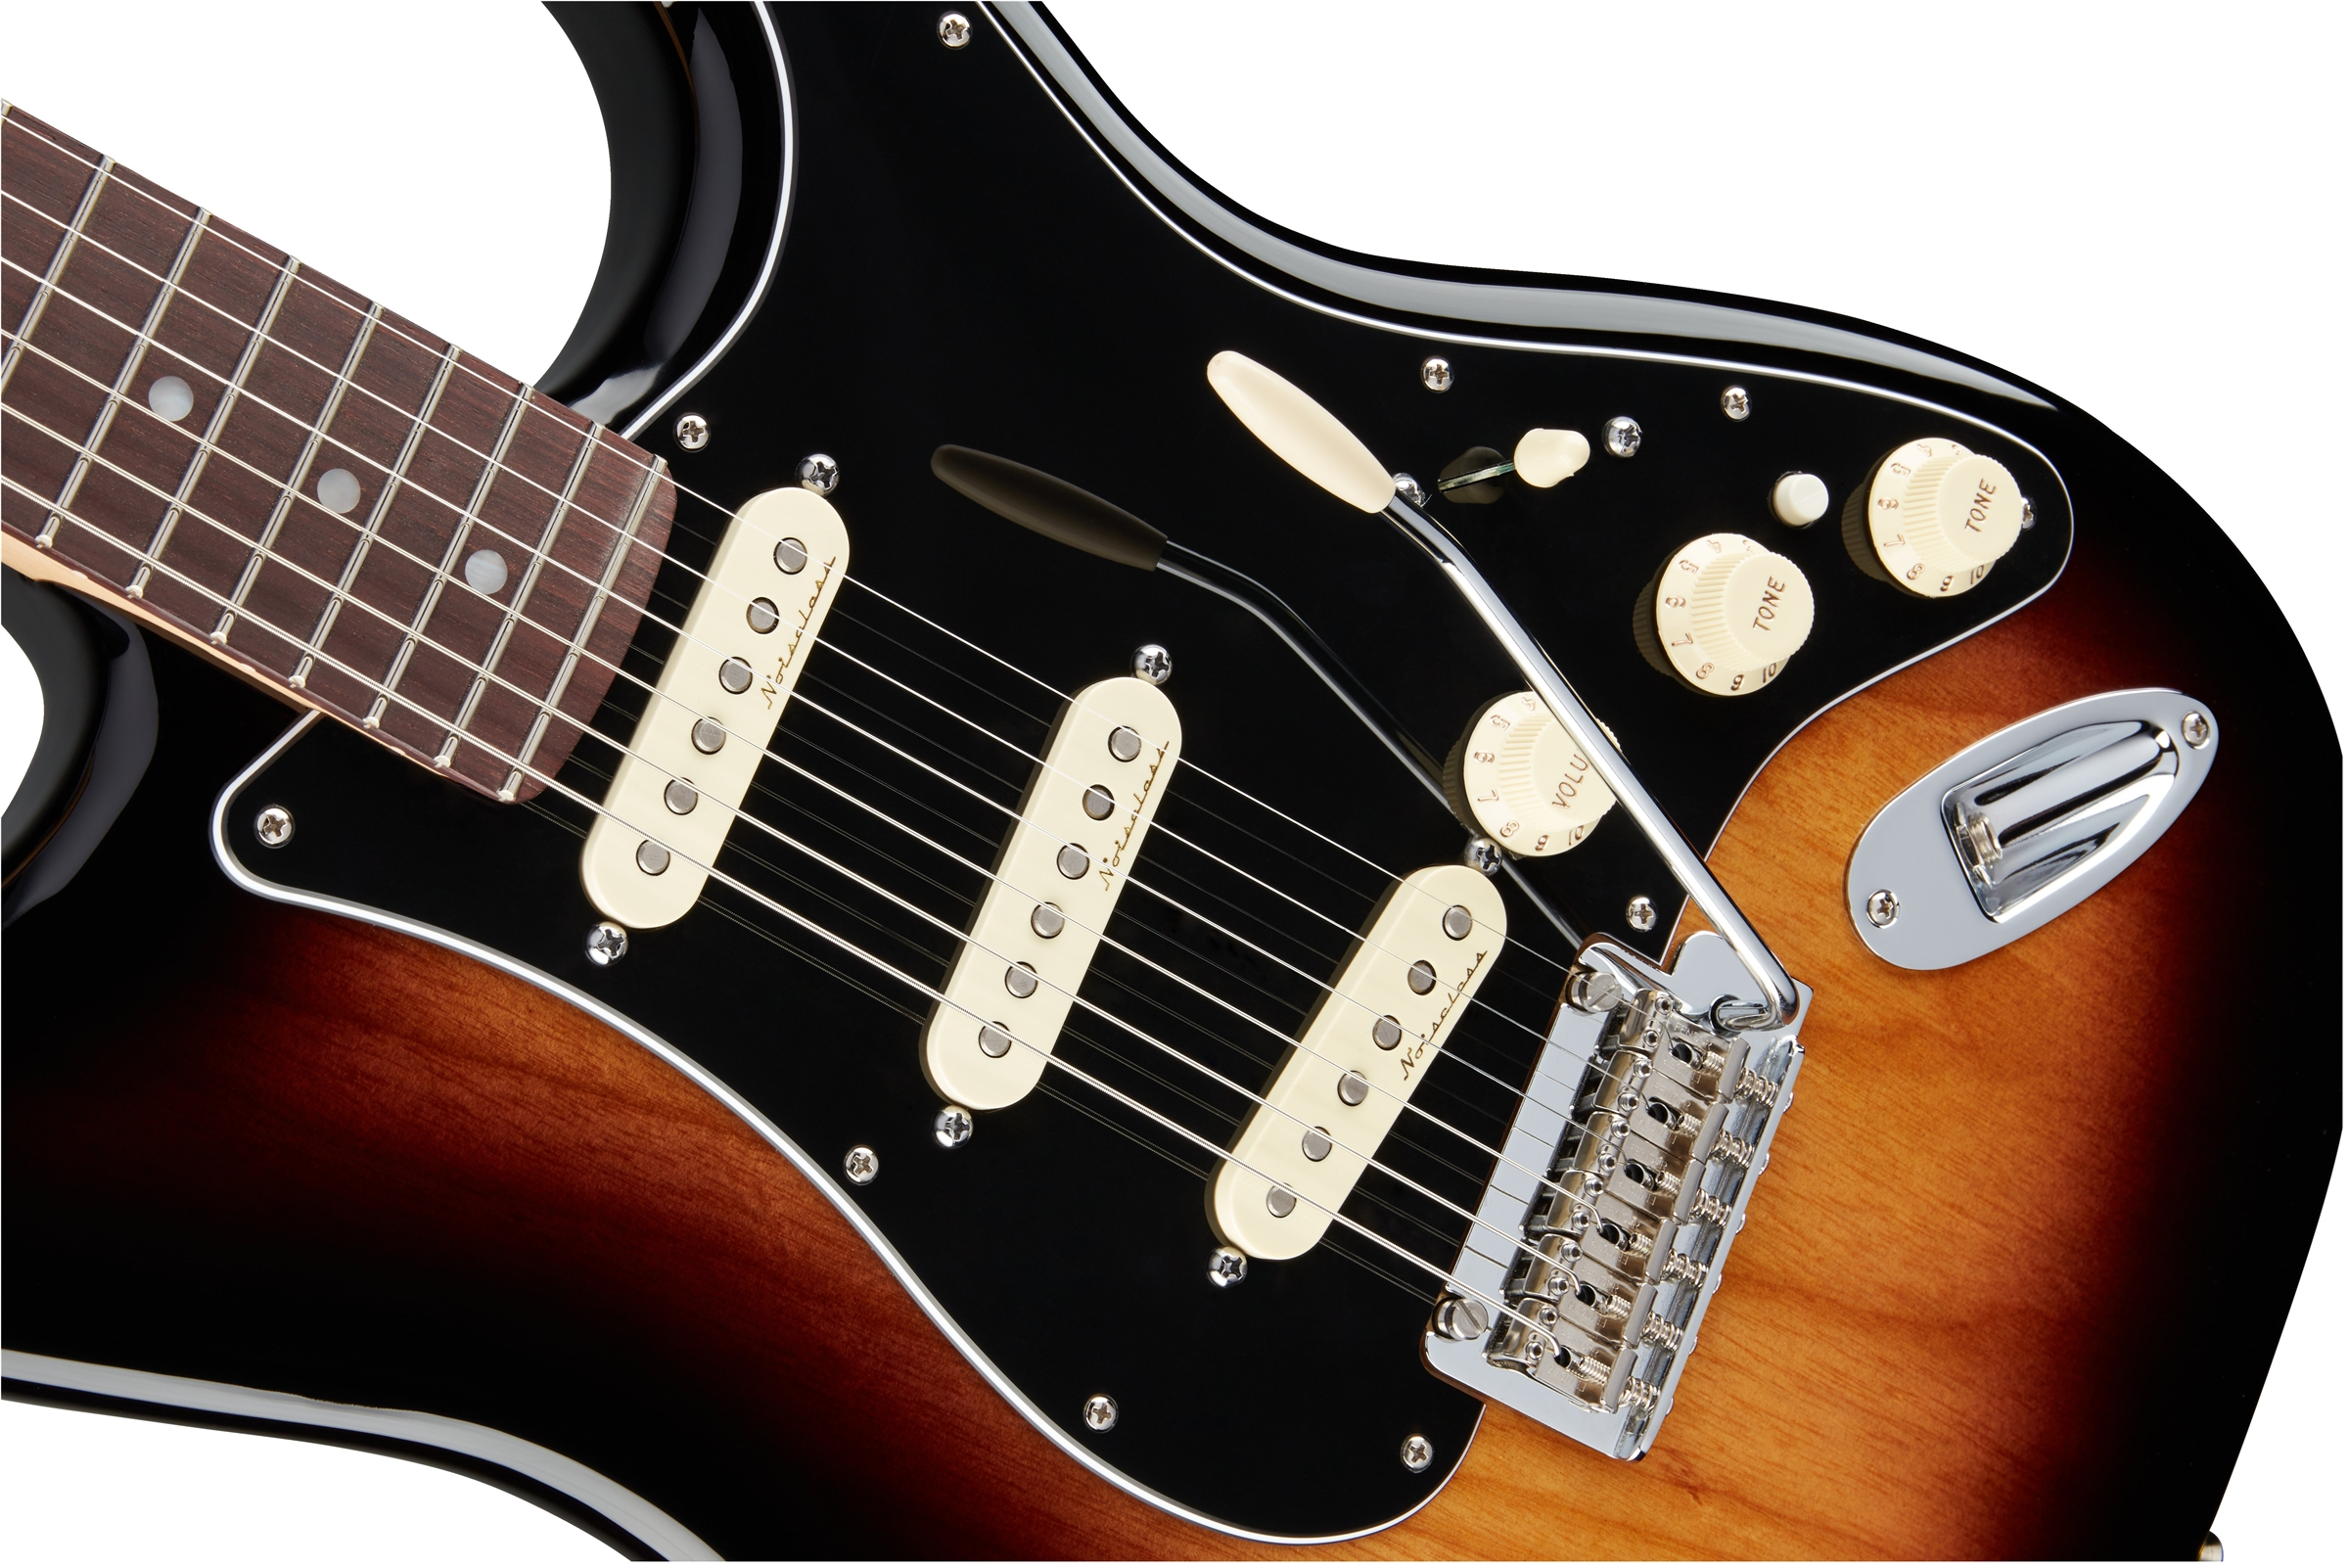 Charming Strat Style Guitar Huge Ibanez Wiring Shaped Dragonfire Pickups Wiring Diagram Les Paul 3 Pickup Wiring Youthful Dimarzio Color Code DarkCar Alarm Installation Instructions Fender Deluxe Stratocaster®, Pau Ferro Fingerboard, 2 Color Sunburst